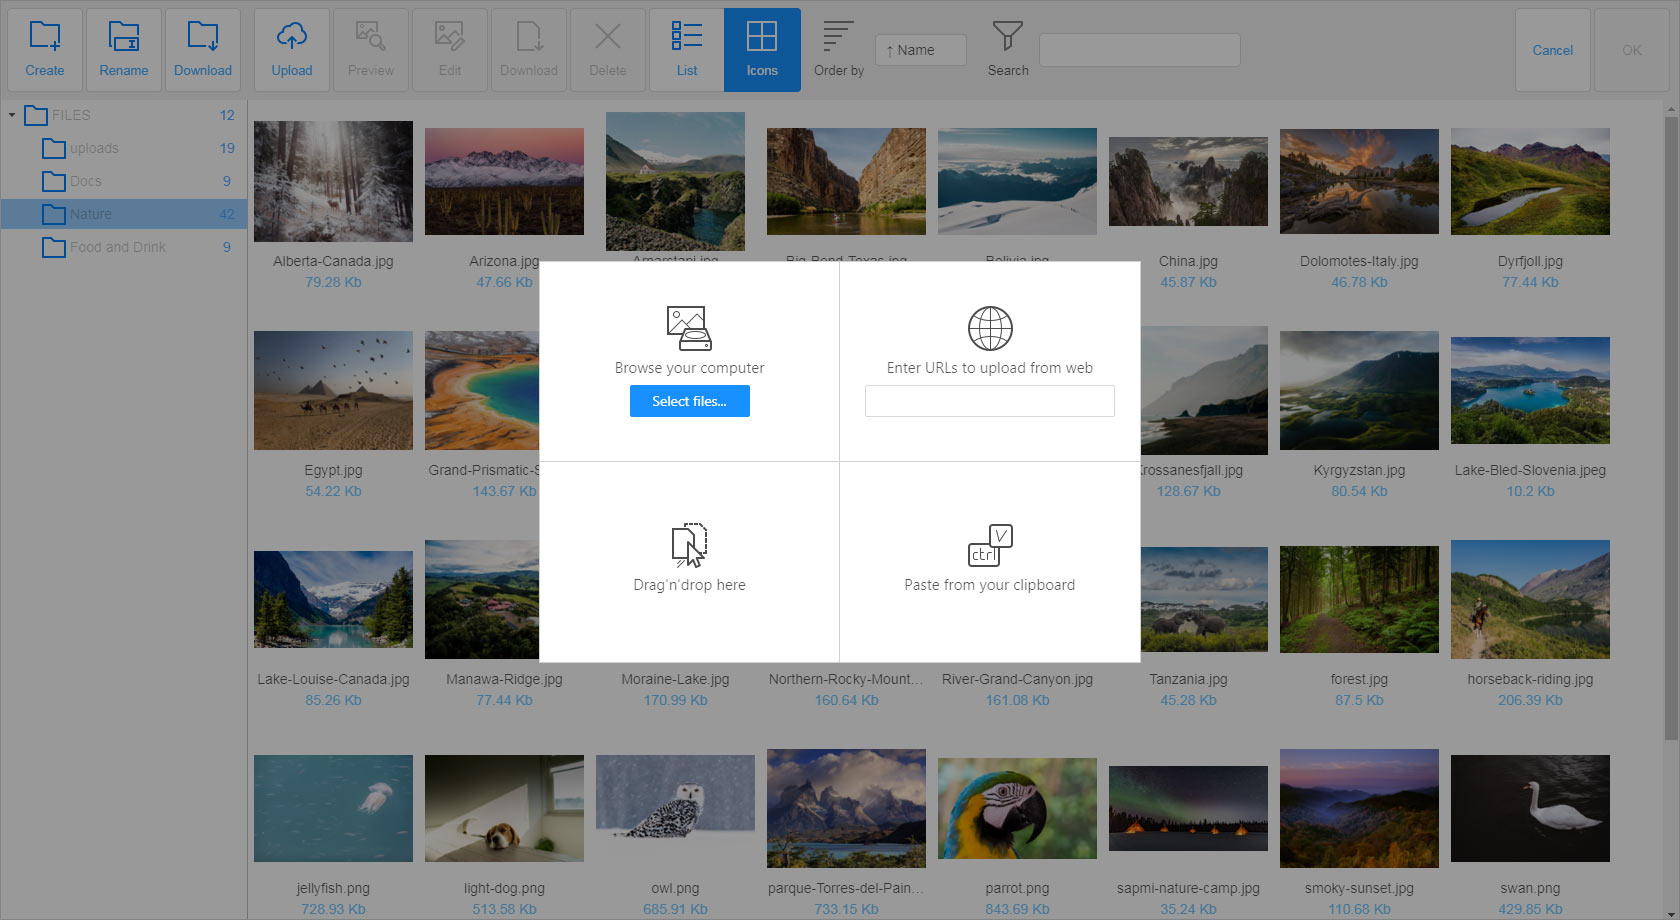 File Manager for your website - N1ED